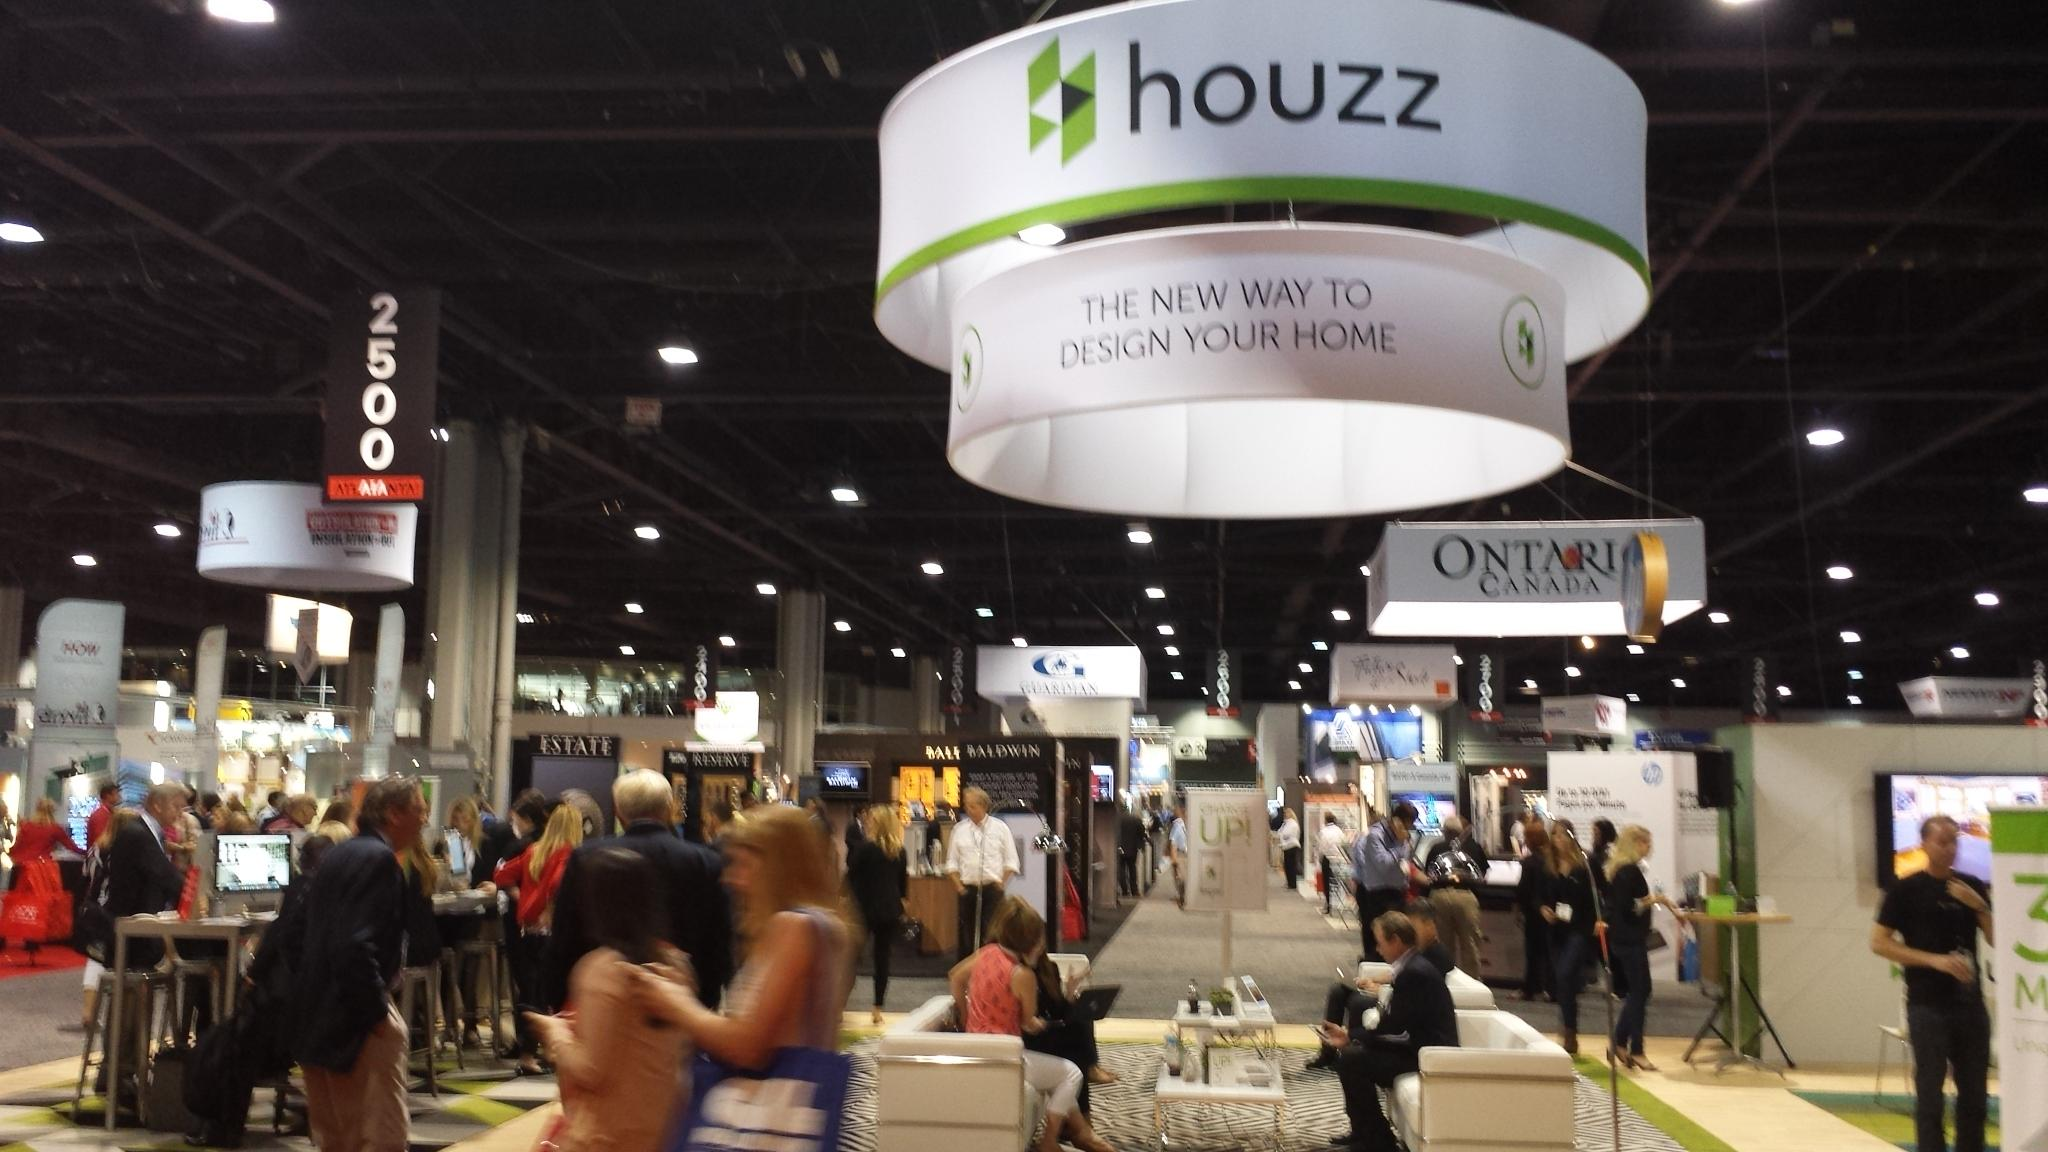 Houzz Booth at AIA Convention 2015